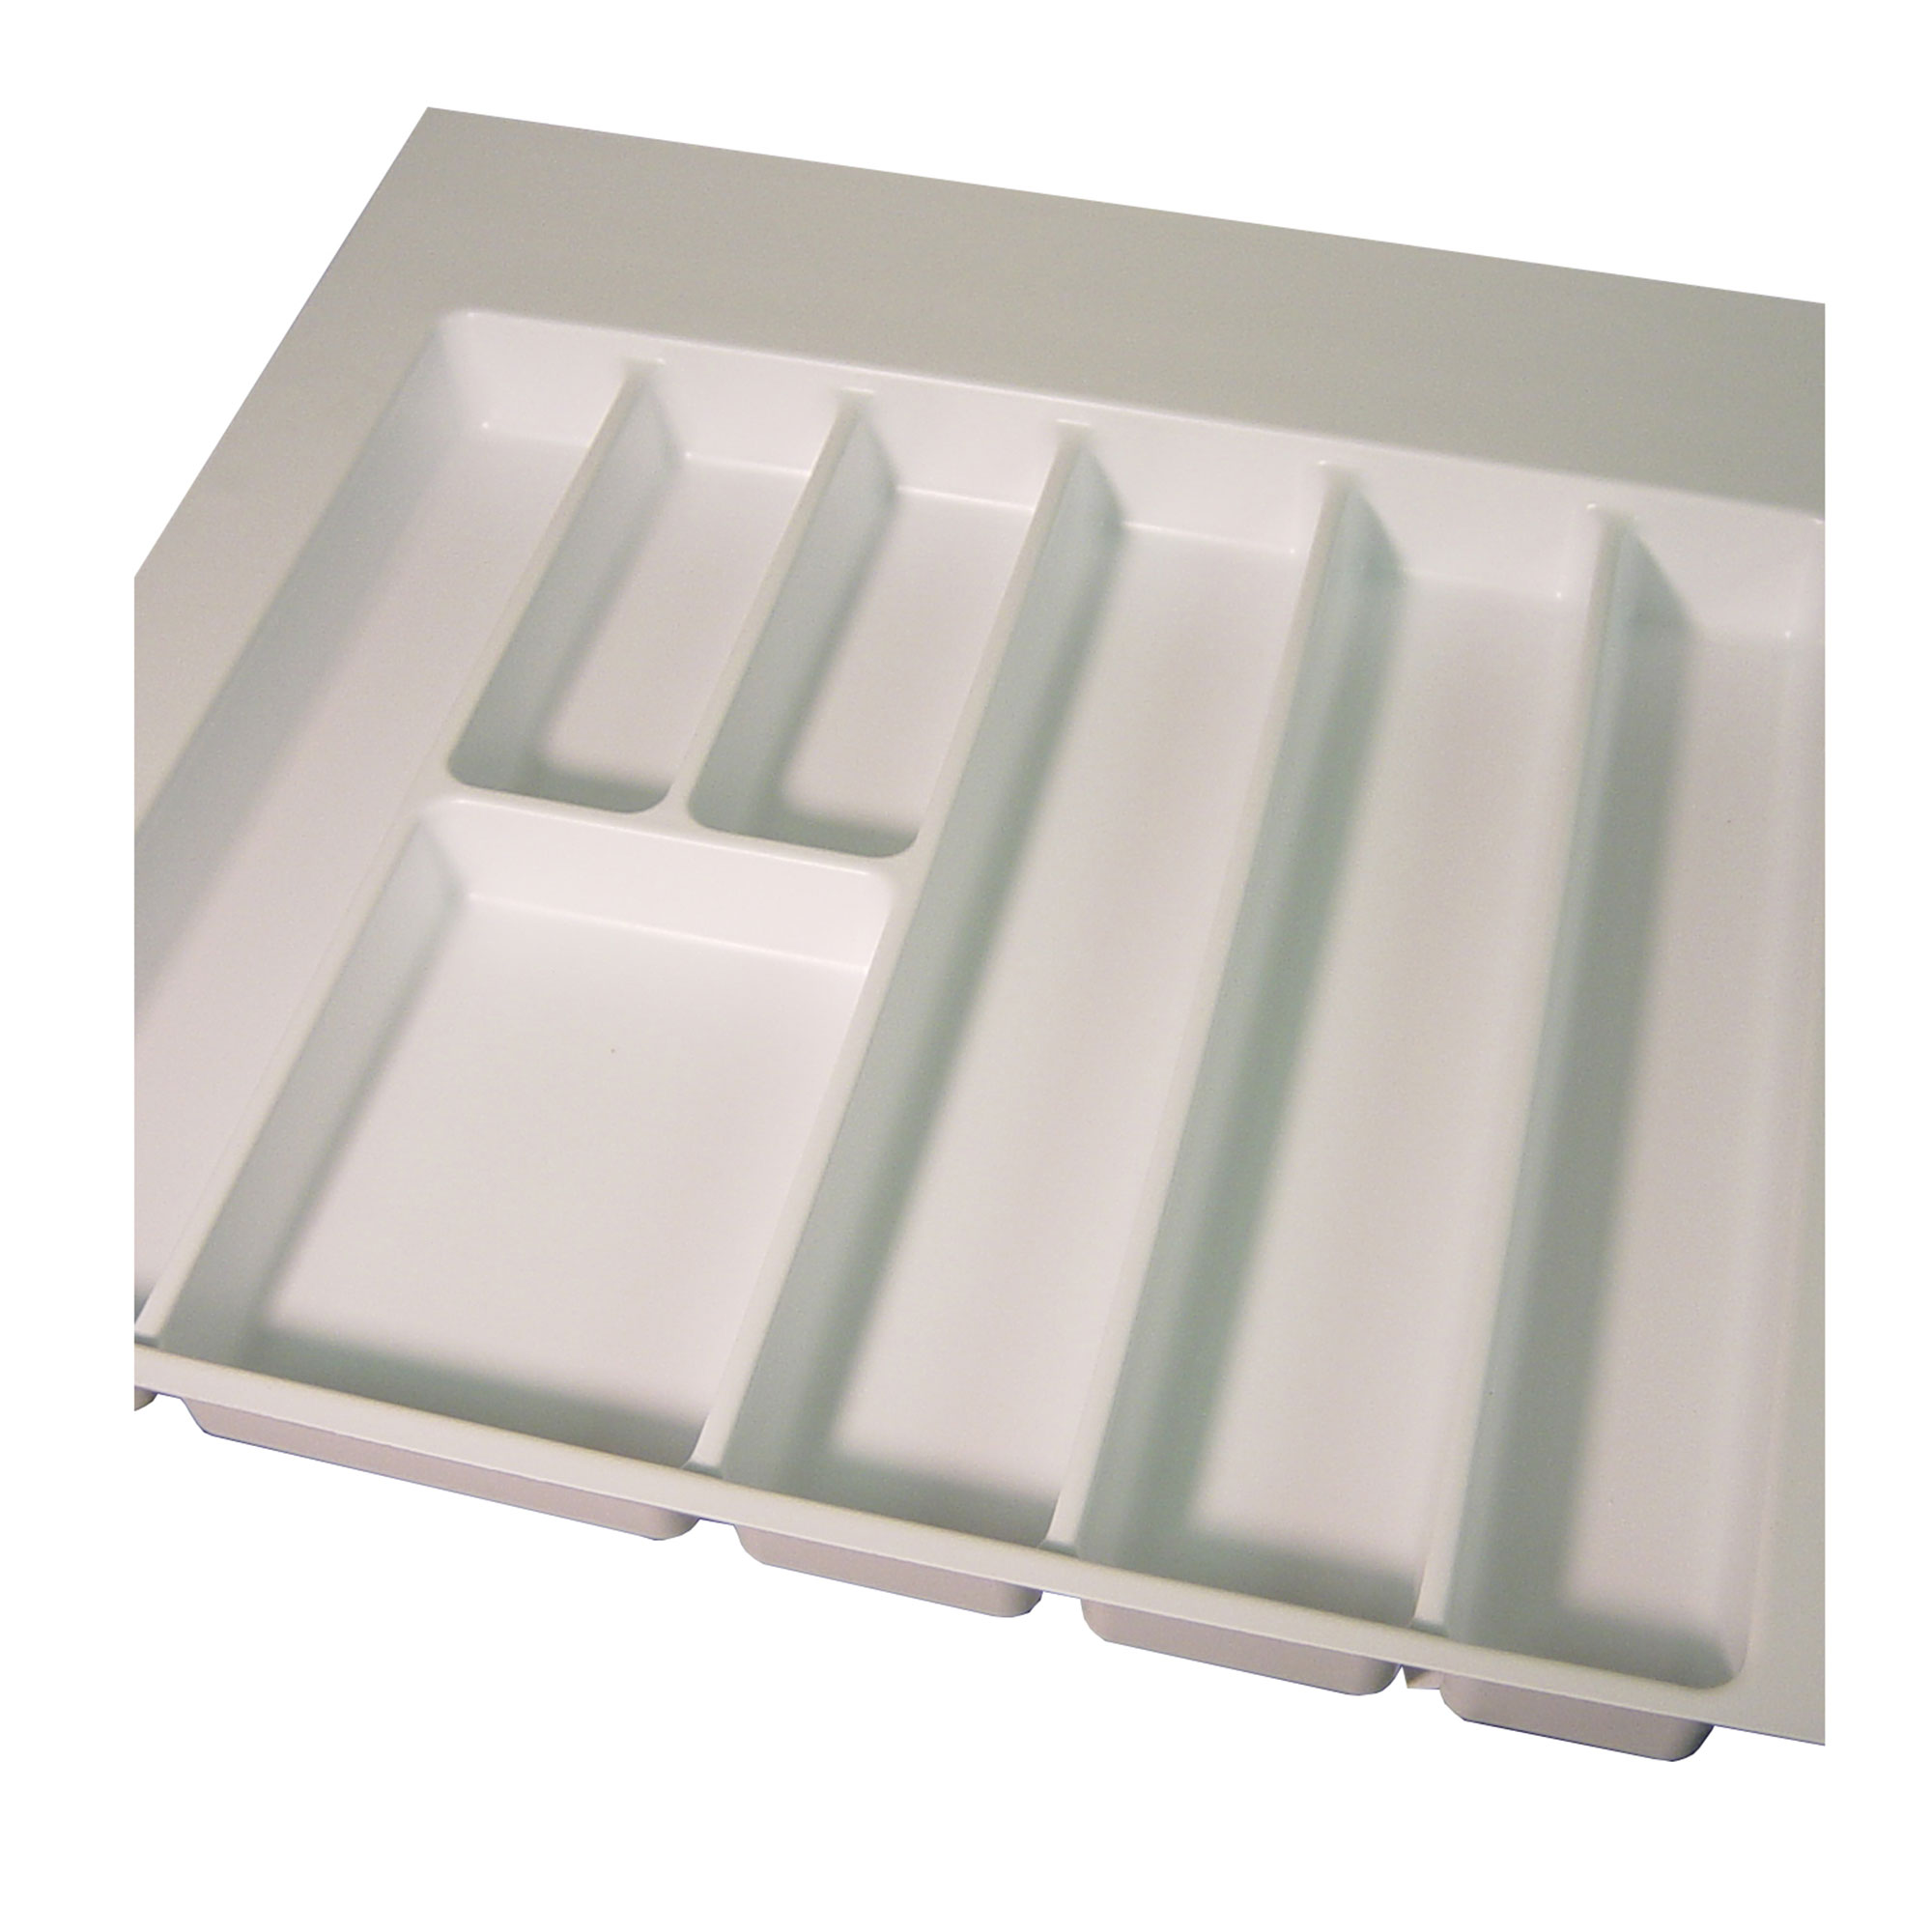 22 X 21 inch Trimmable Utensil Drawer Organizer